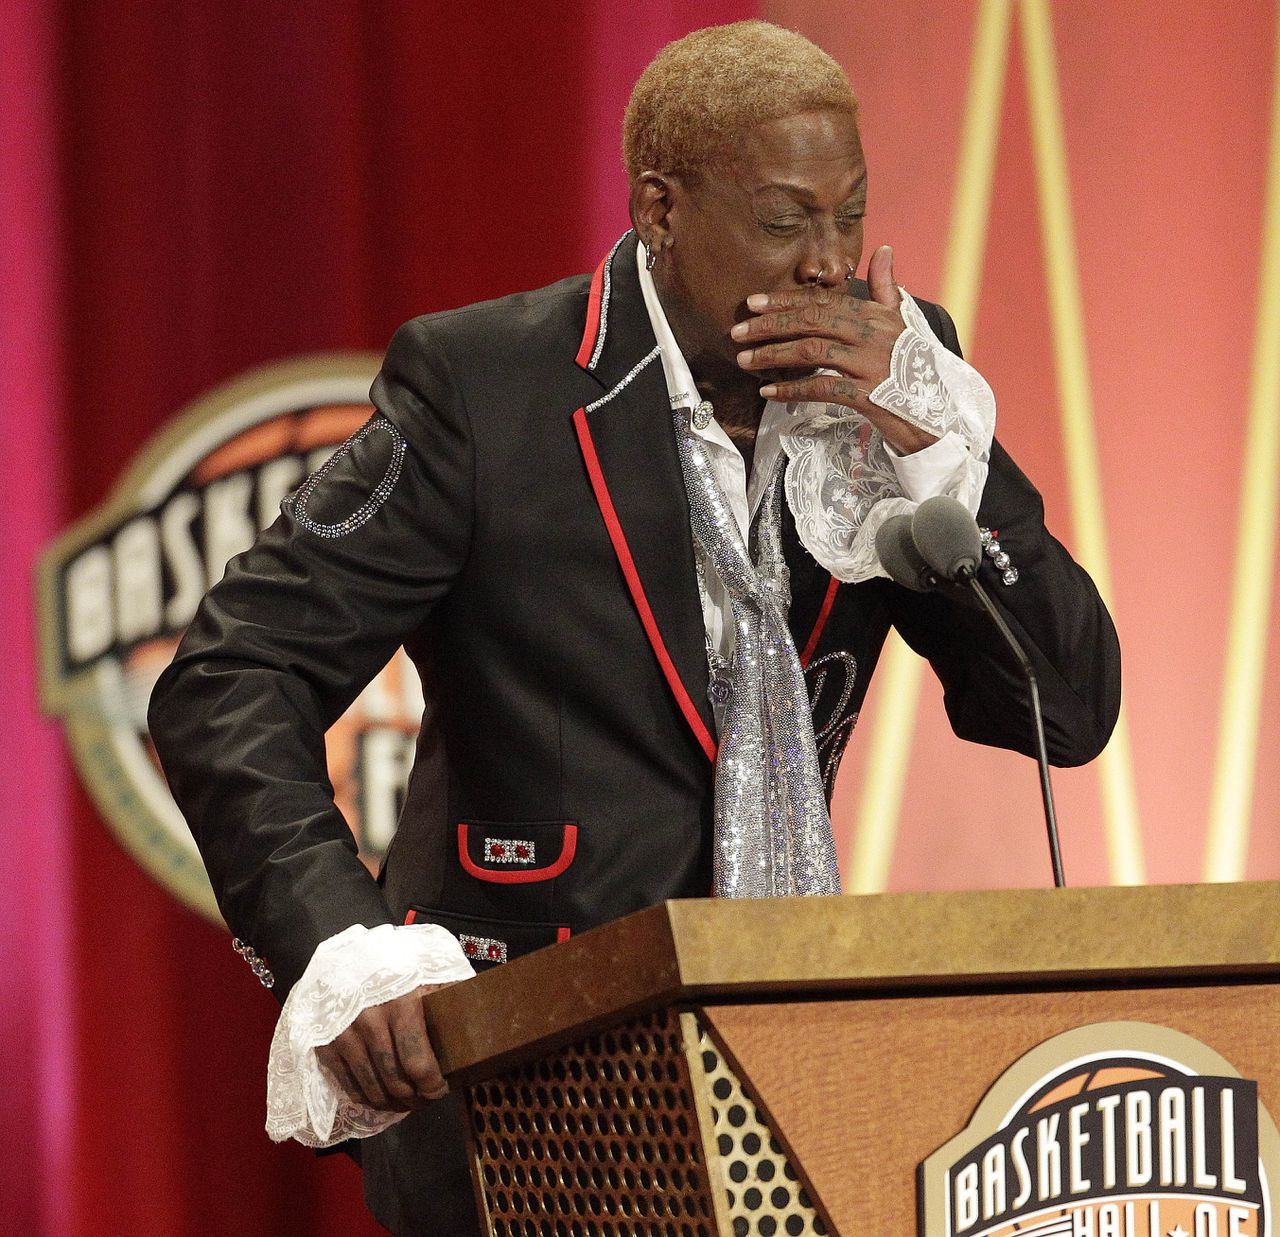 FOR USE AS DESIRED, YEAR END PHOTOS - FILE -In this Aug. 12, 2011 file photo, Dennis Rodman becomes emotional during his address for his Basketball Hall of Fame enshrinement at a ceremony in Springfield, Mass. (AP Photo/Stephan Savoia, File)